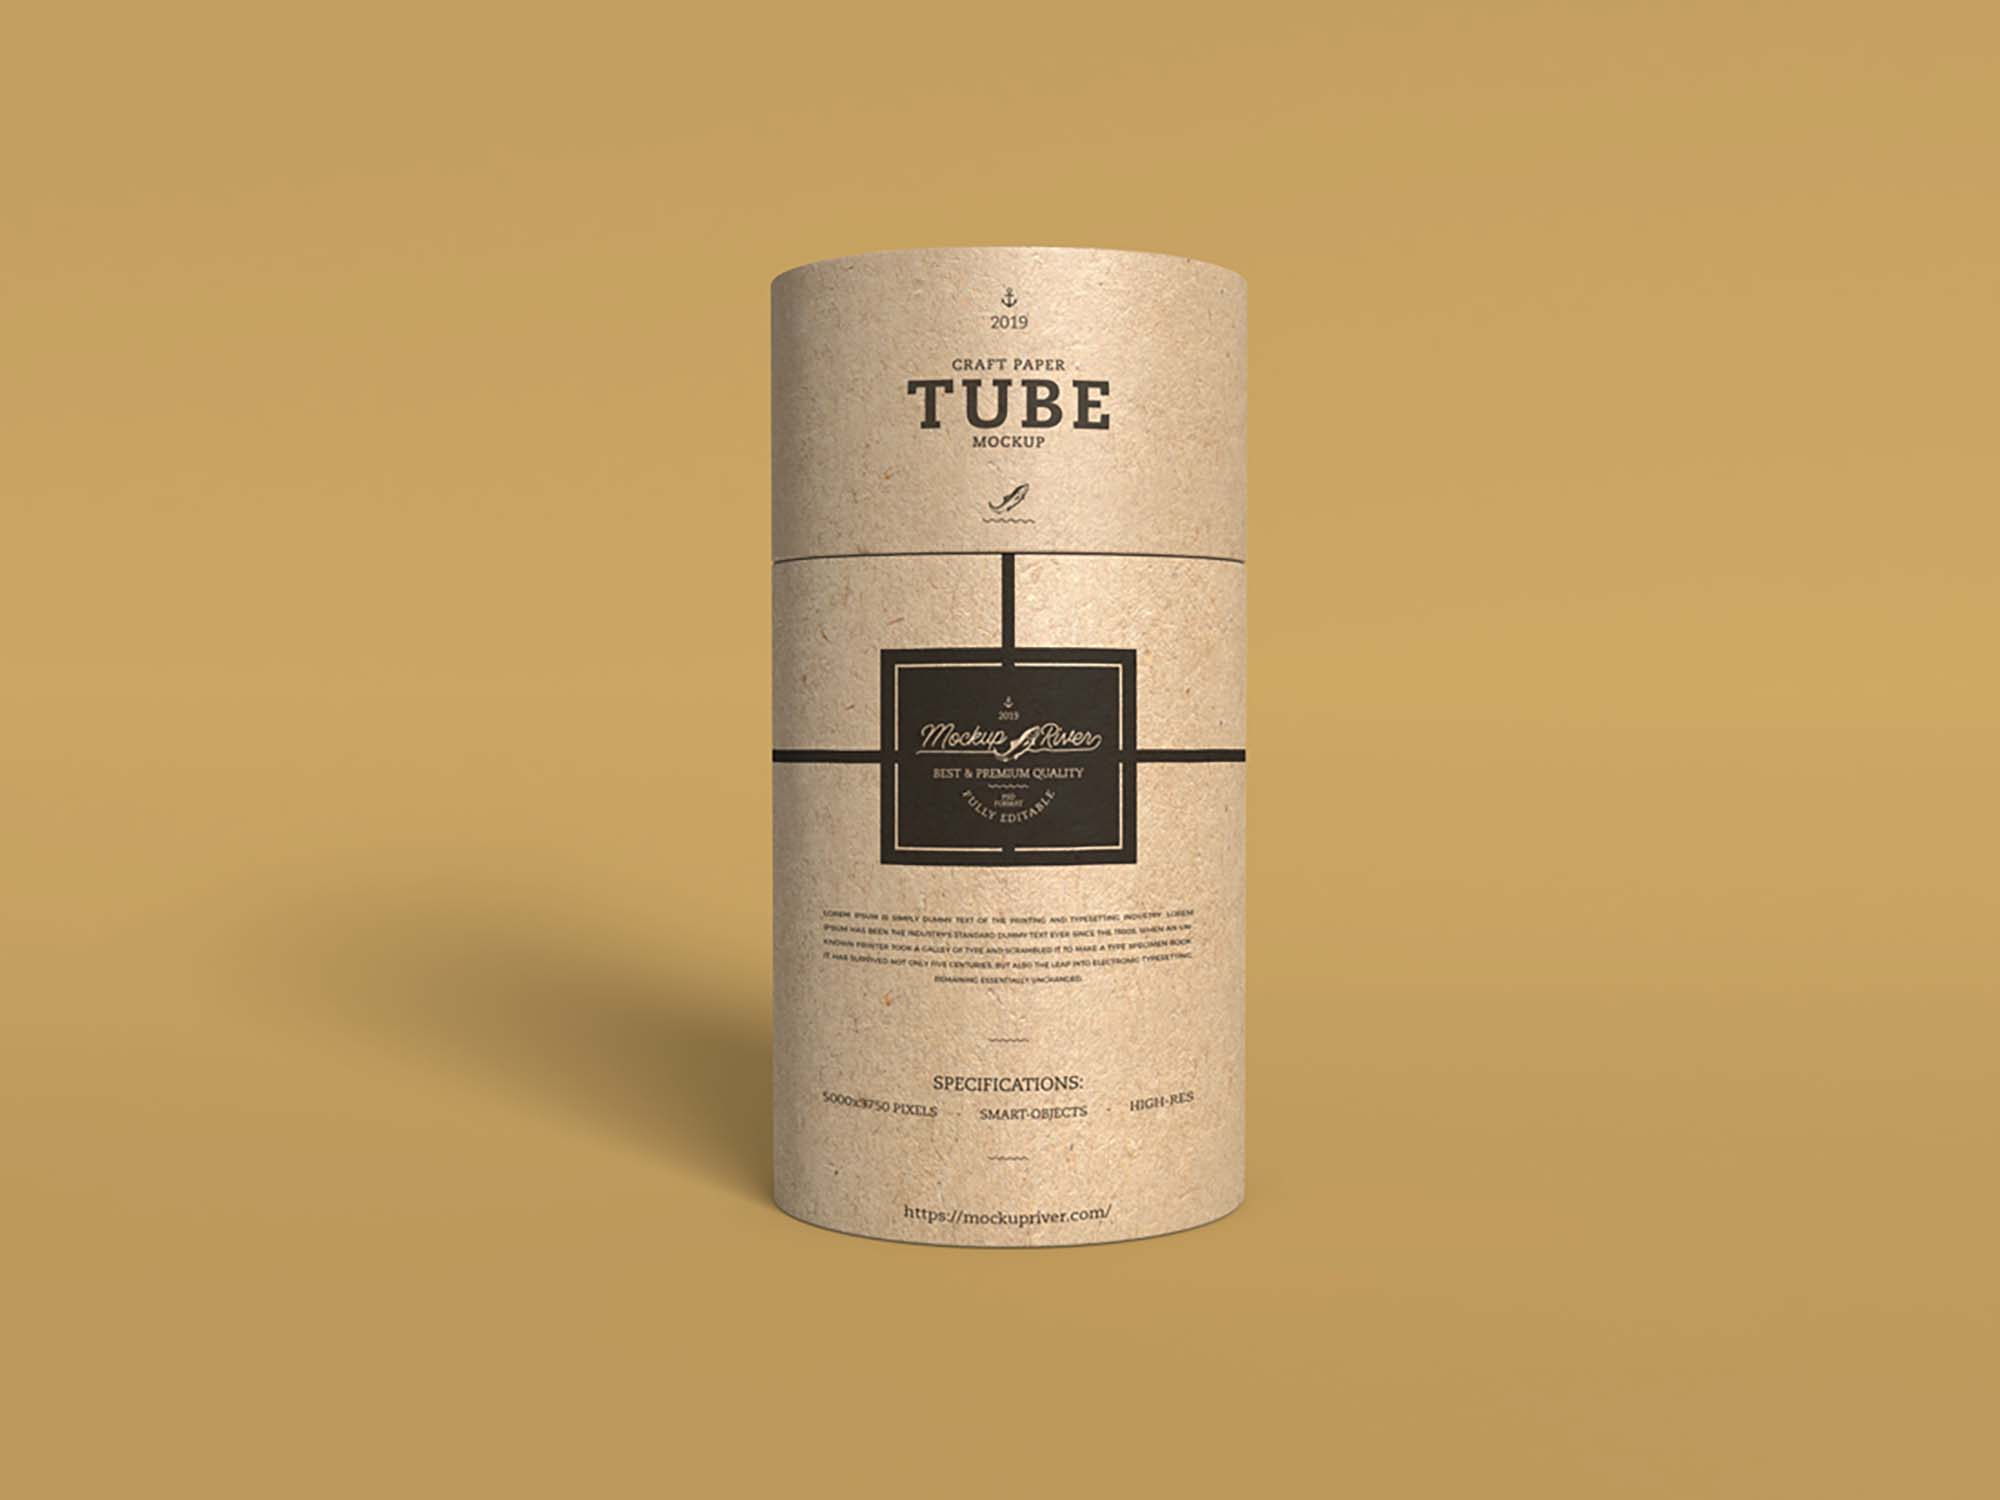 Craft Paper Tube Mockup